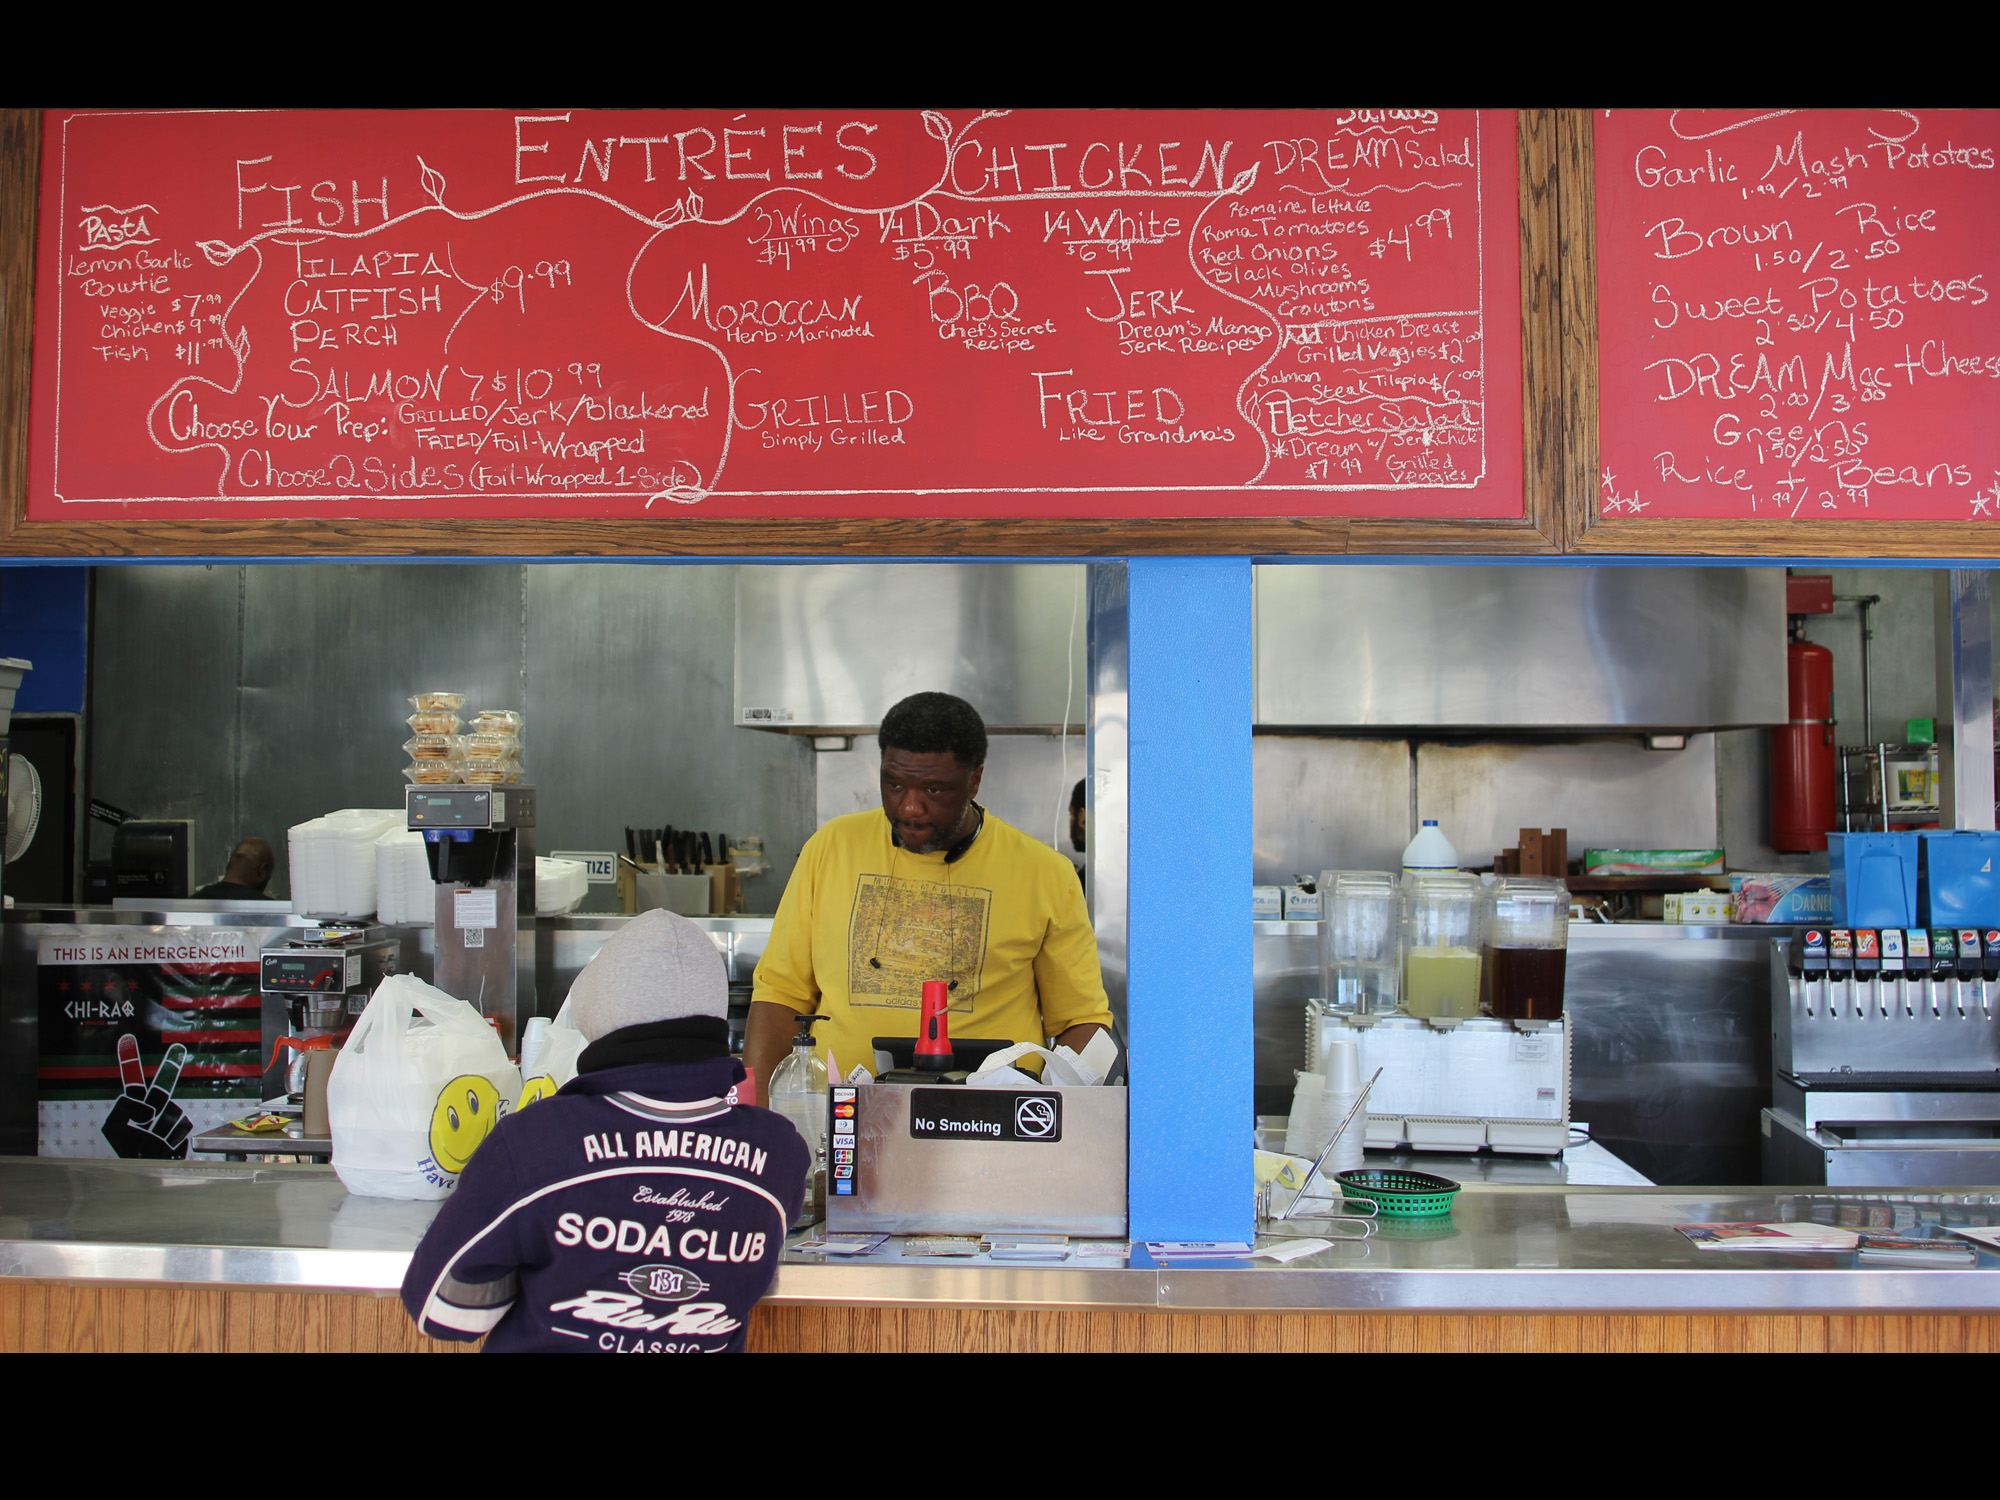 FRESHLY MADE FOOD COMES TO ENGLEWOOD AT THE DREAM CAFE & GRILLE